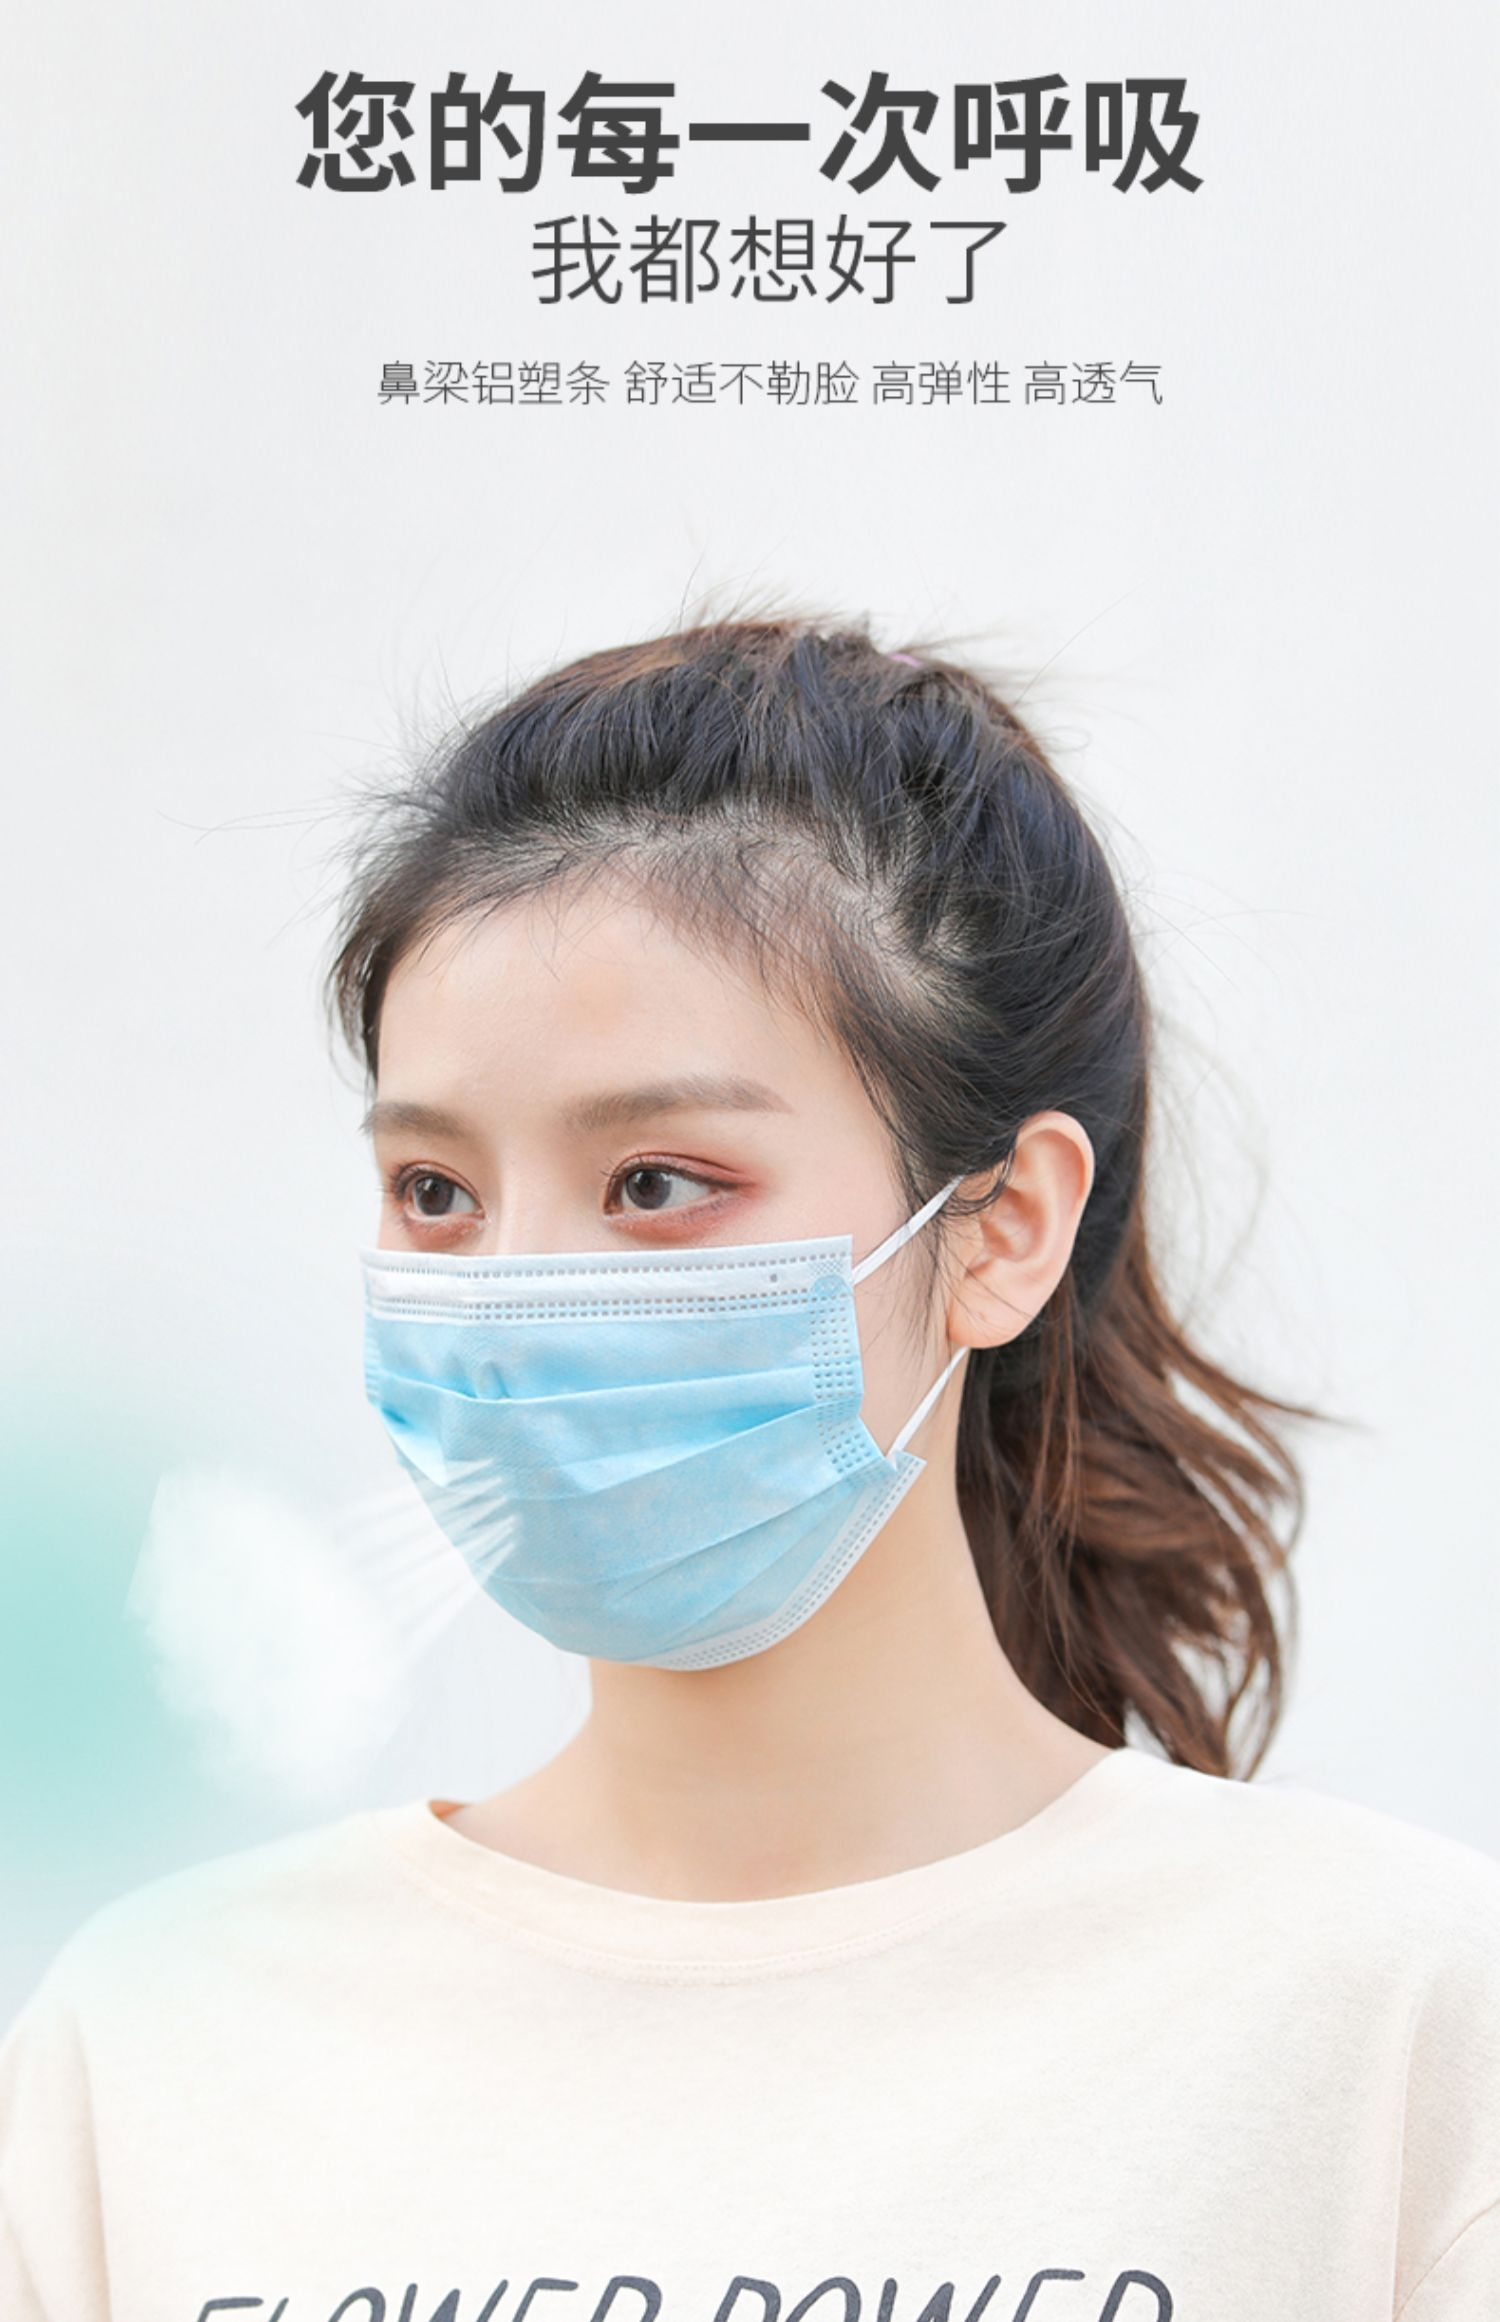 Kn95 mask five layer protective disposable mask for dust prevention, haze prevention, exhaust prevention and ventilation